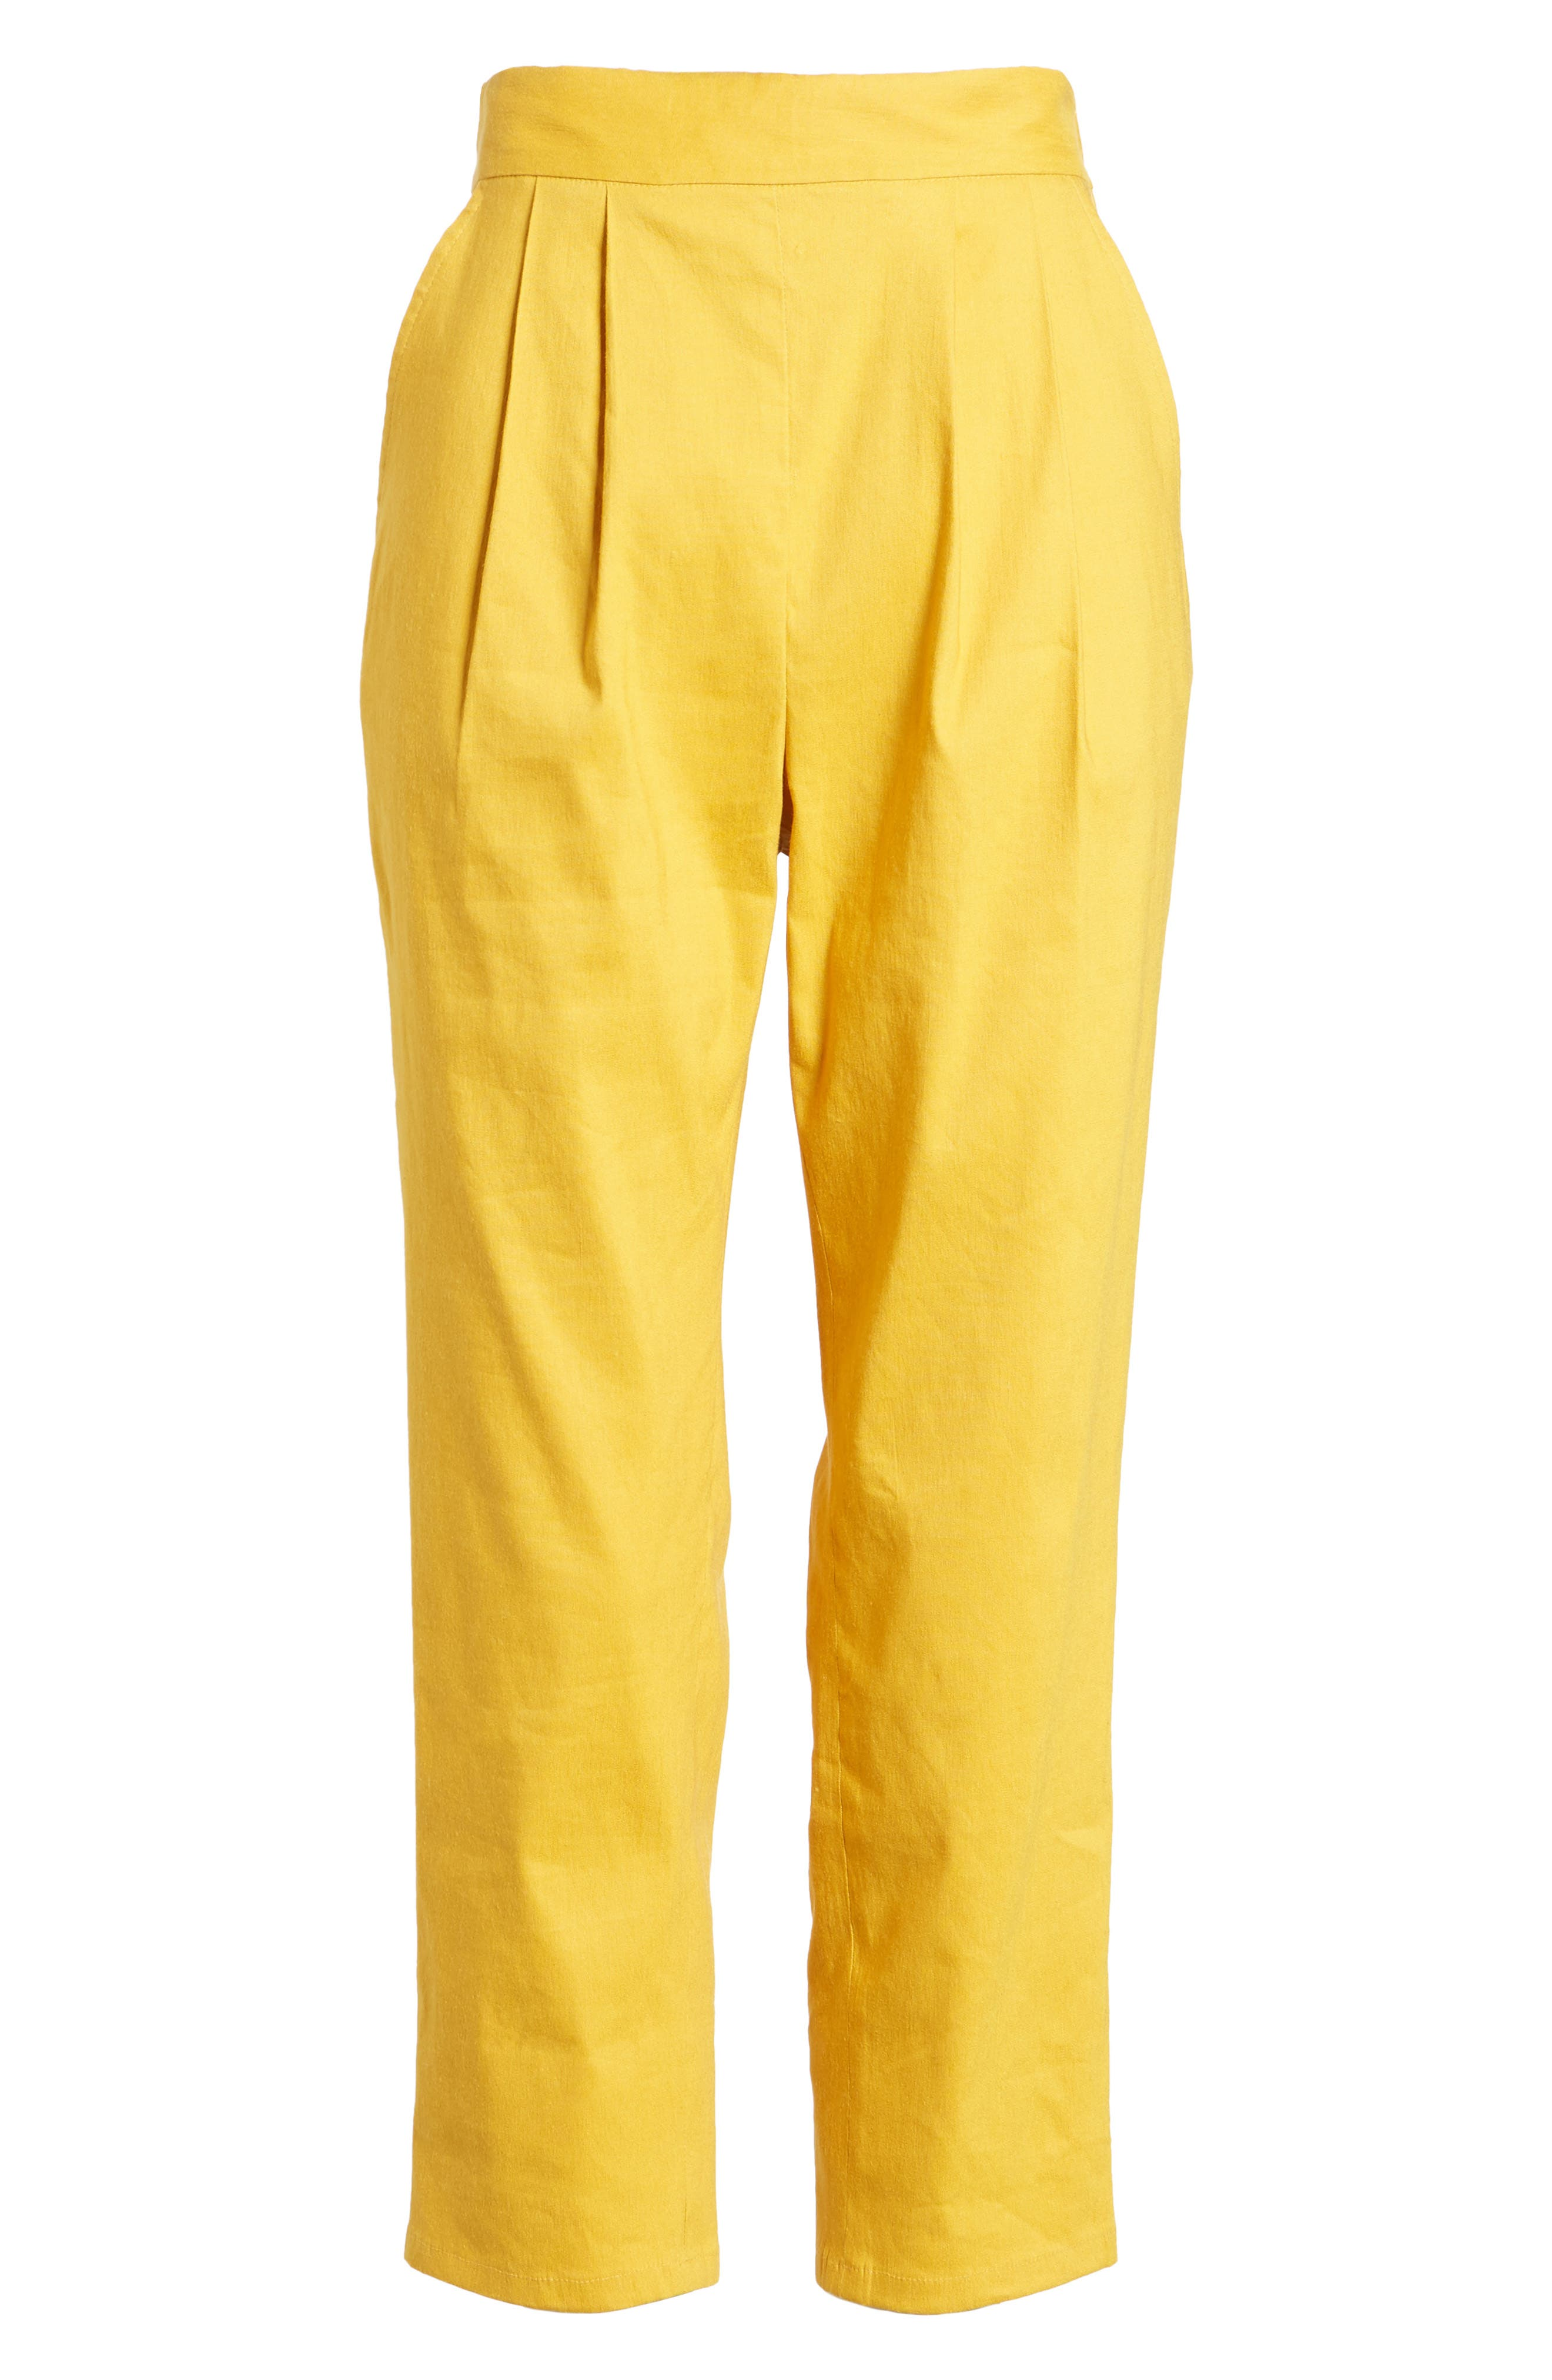 Pleat Front Crop Pants,                             Alternate thumbnail 7, color,                             Yellow Mineral